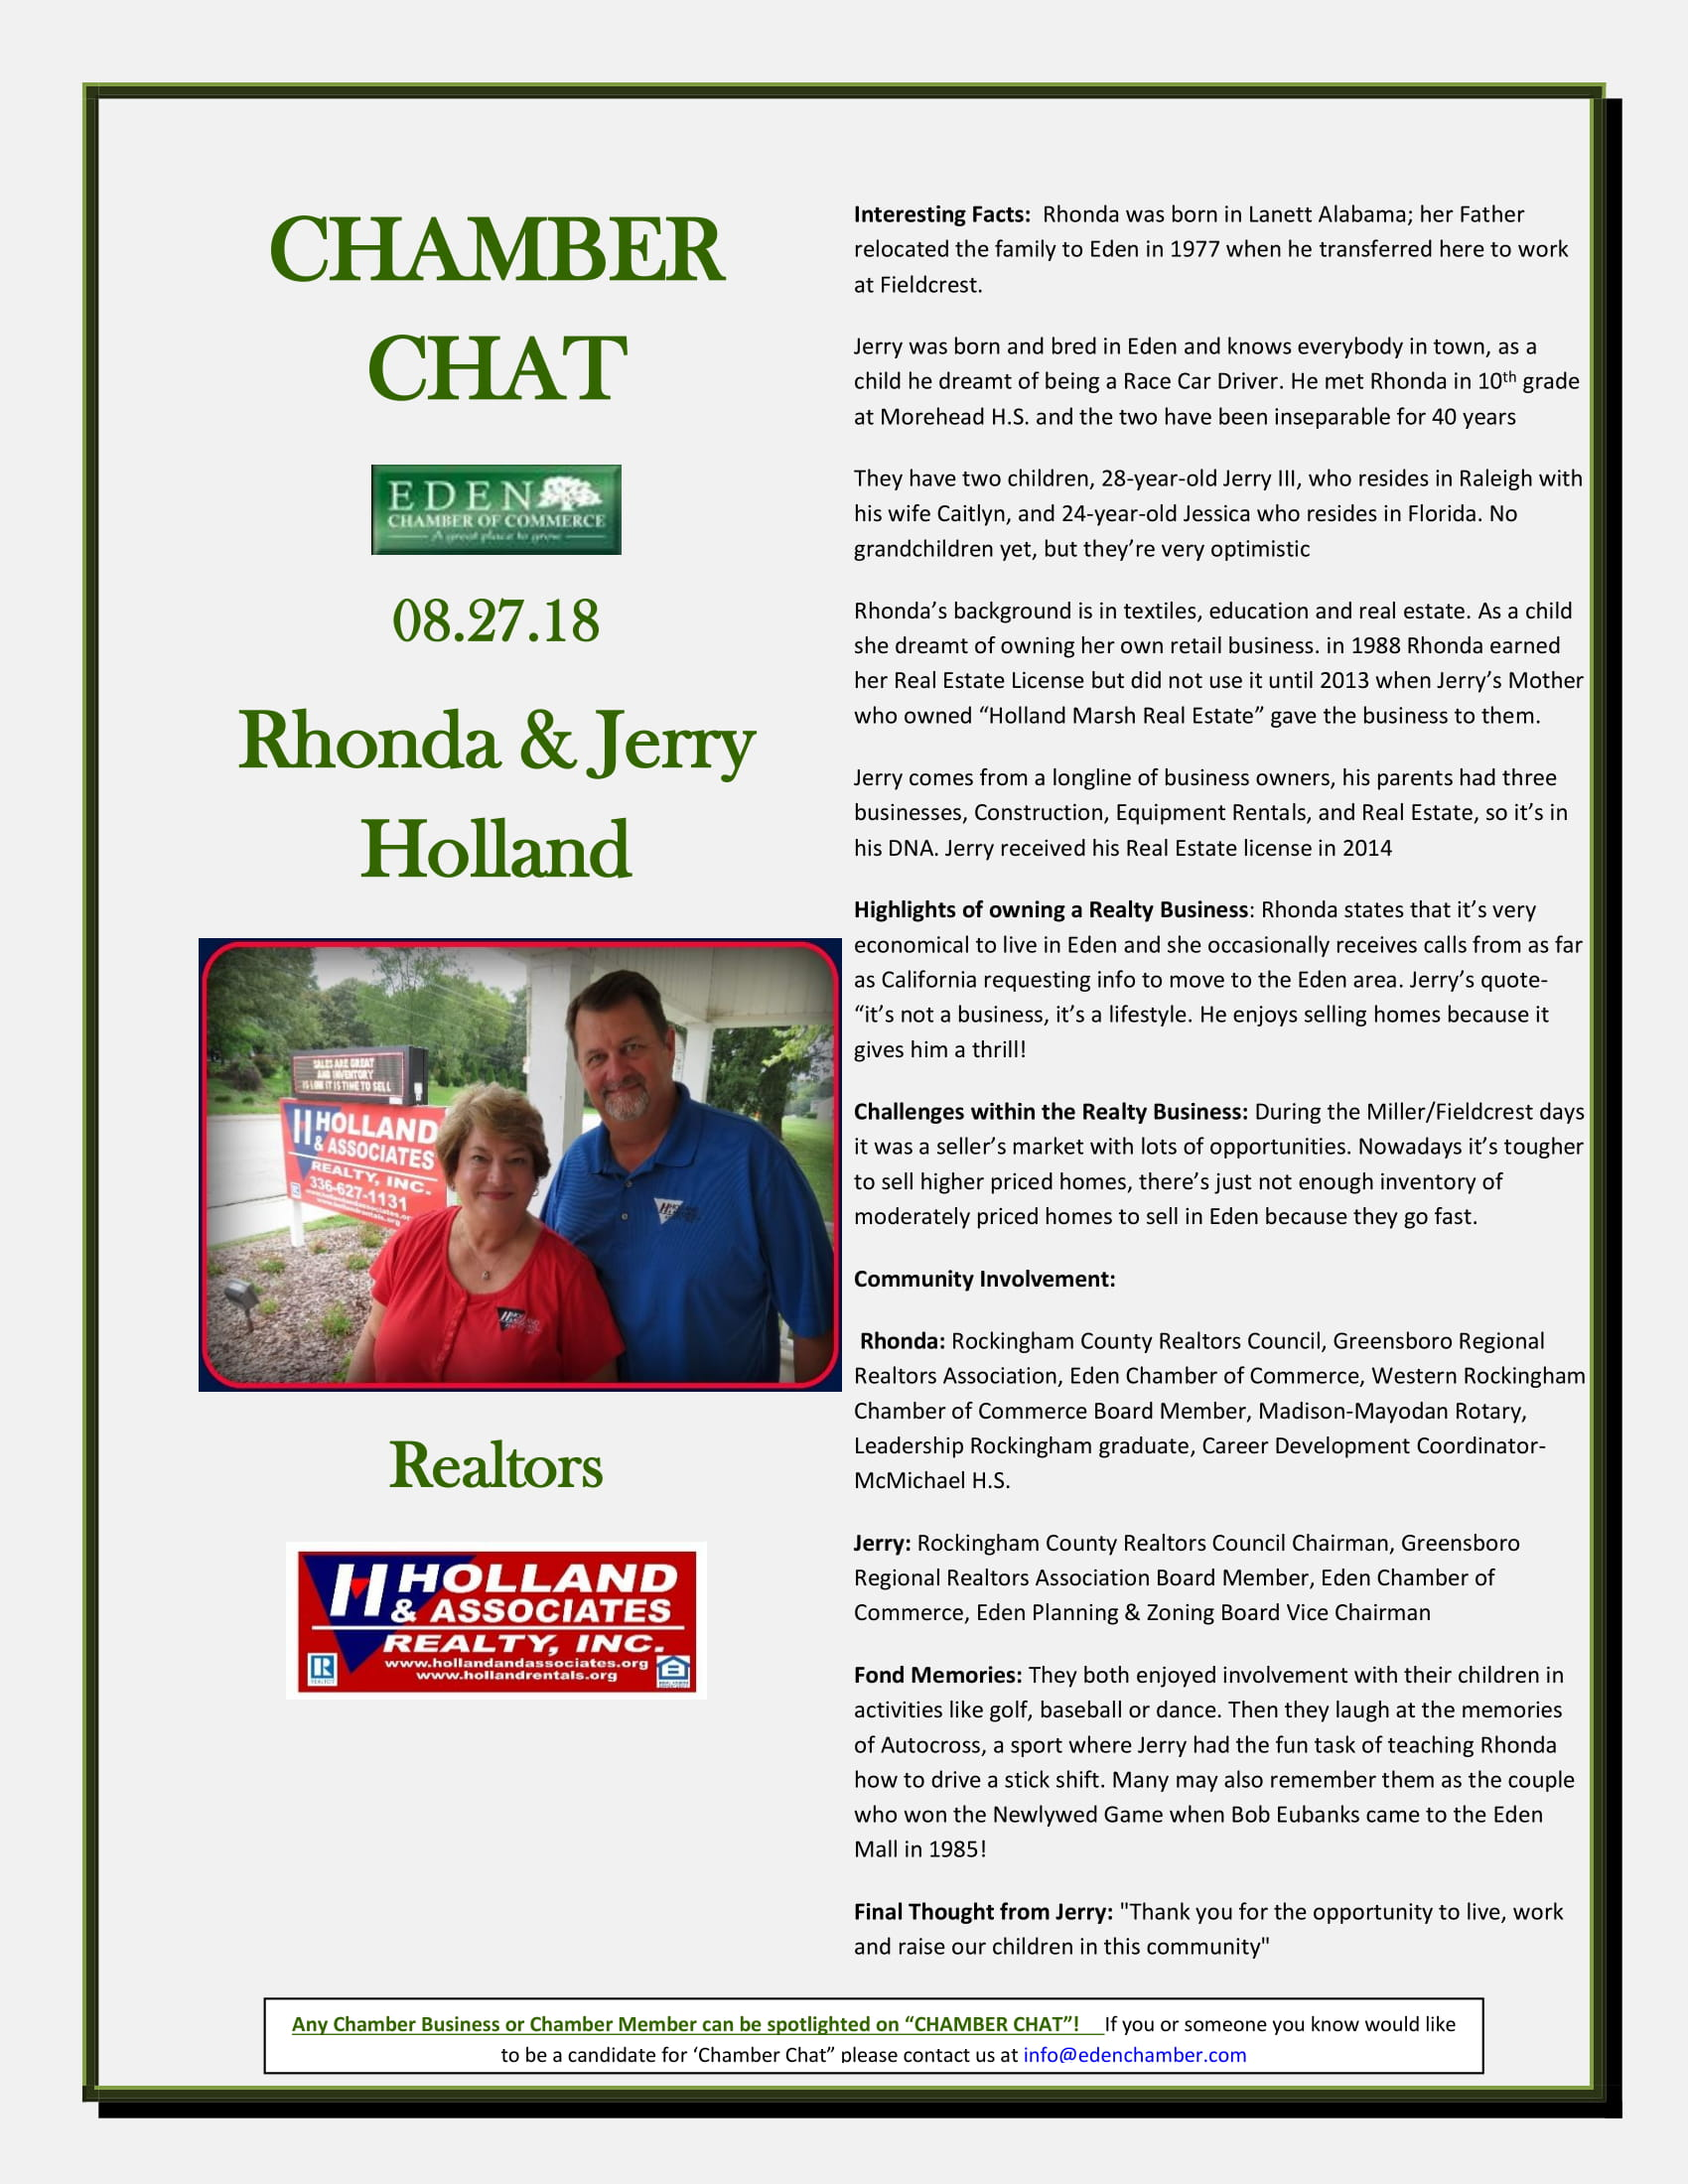 CHAMBER-CHAT--Holland-Realty--Rhonda-and-Jerry-08.27.18-1.jpg